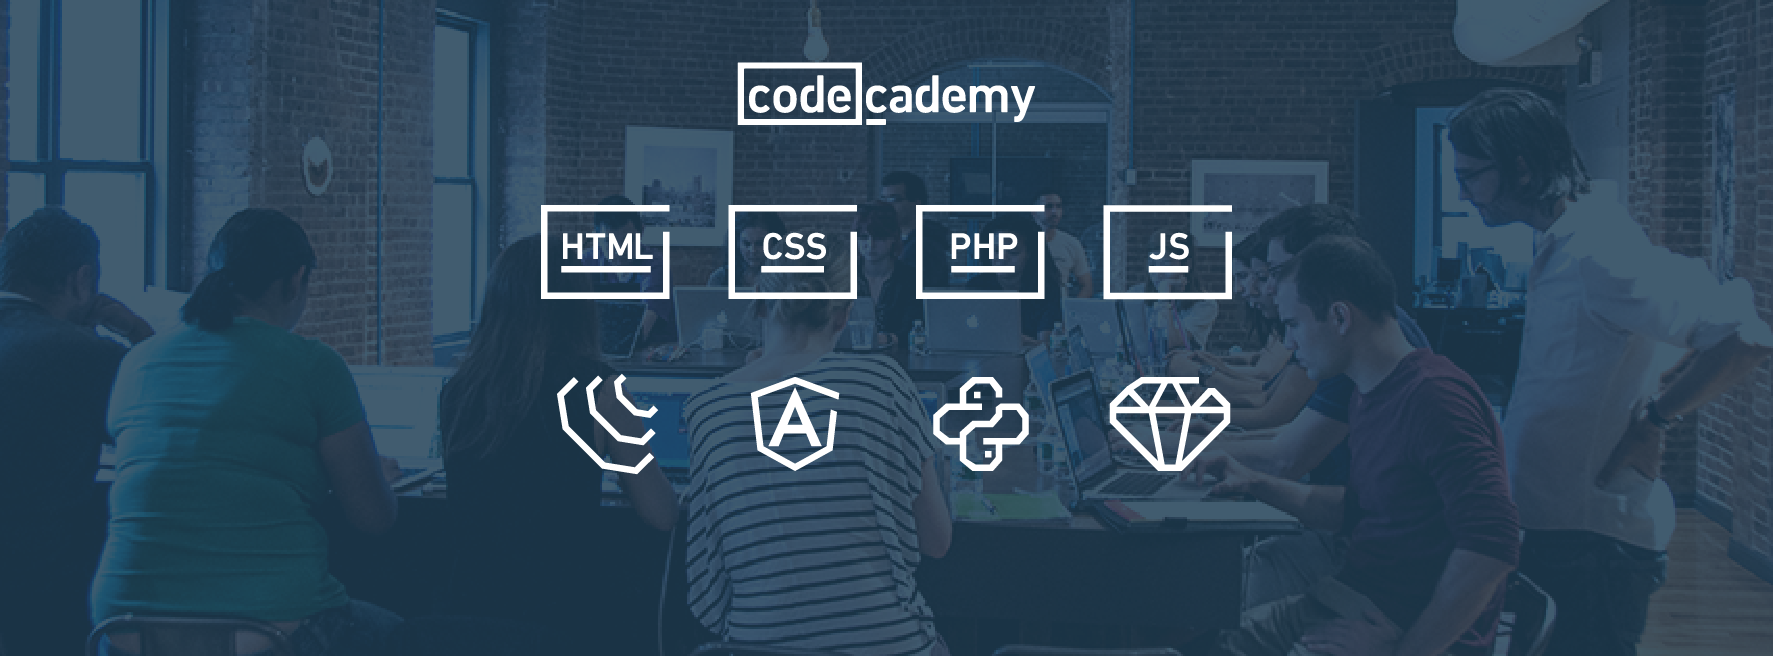 About Codecademy Homepage